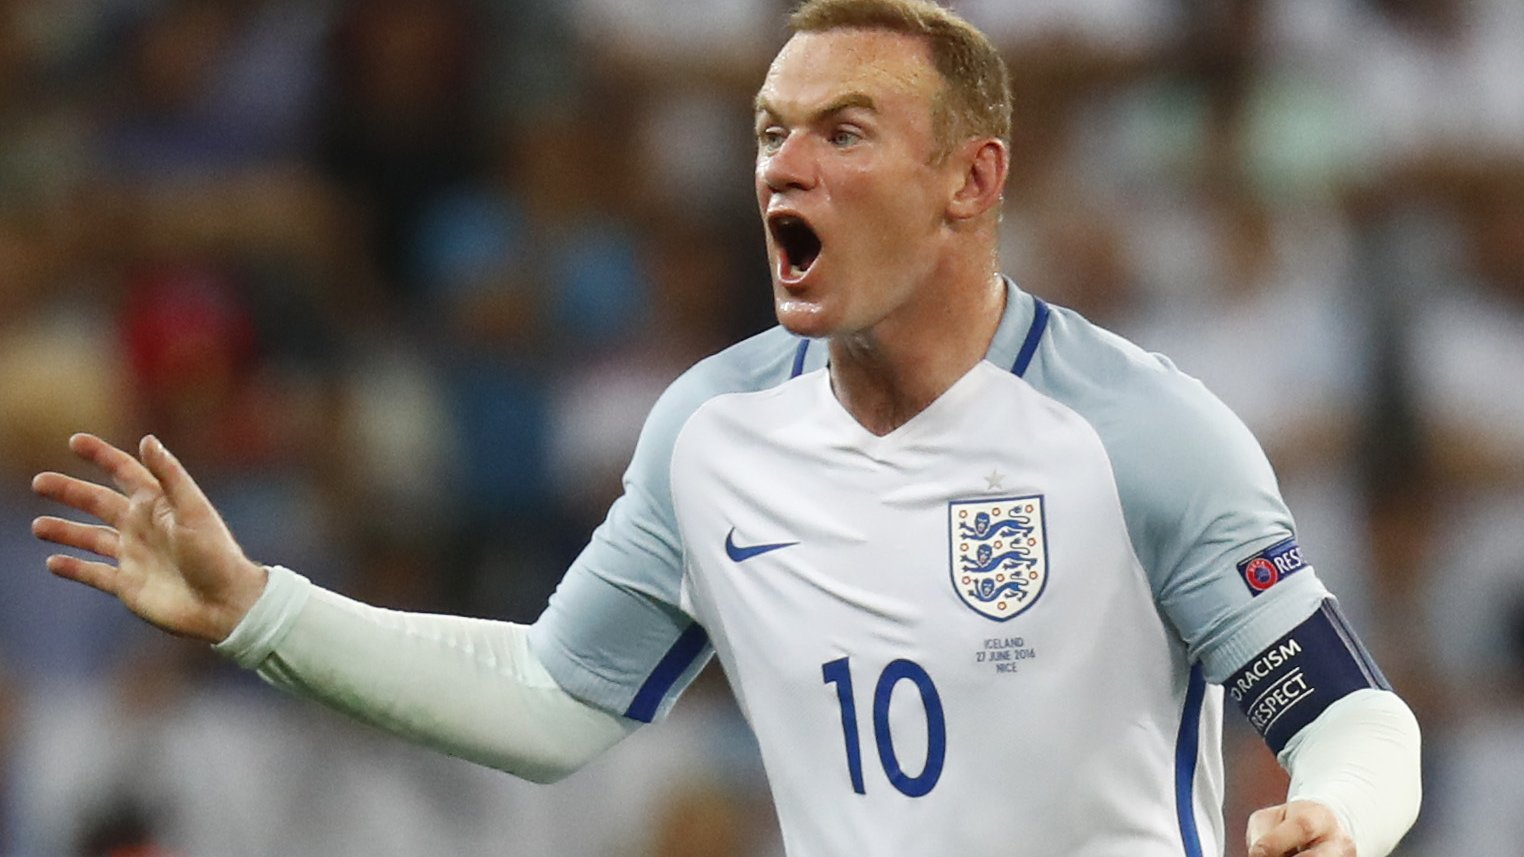 Allardyce sticks with Rooney as England captain